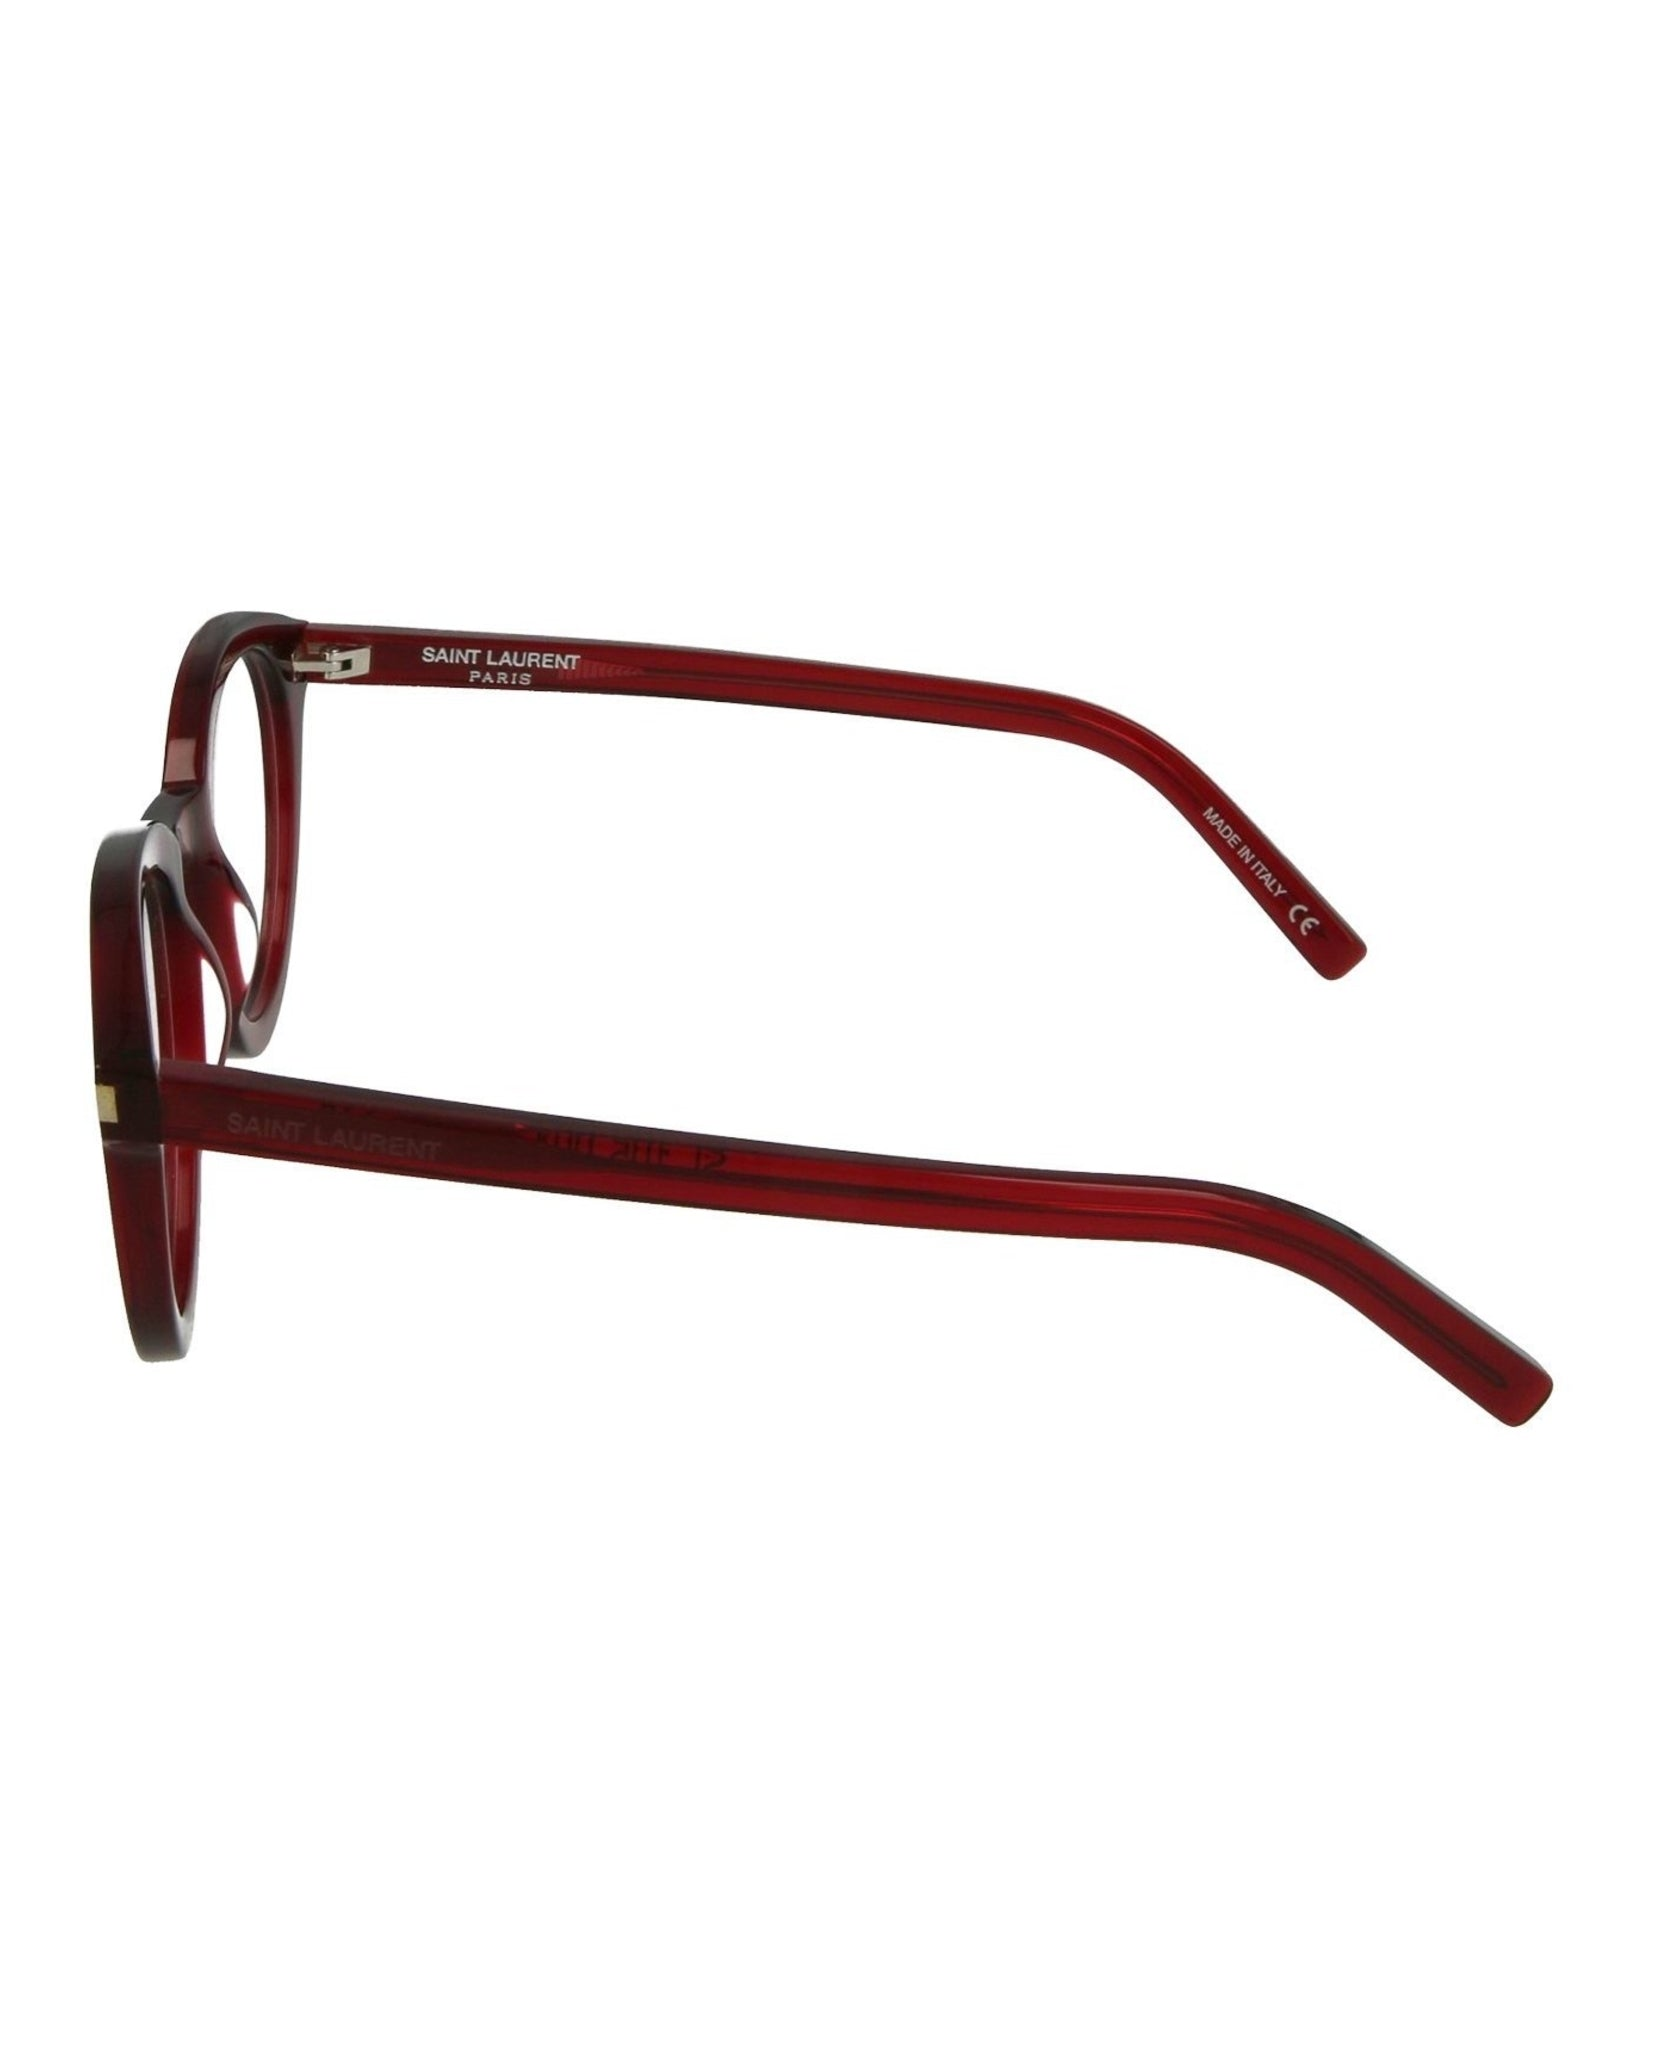 Saint Laurent Round/Oval Optical Frames